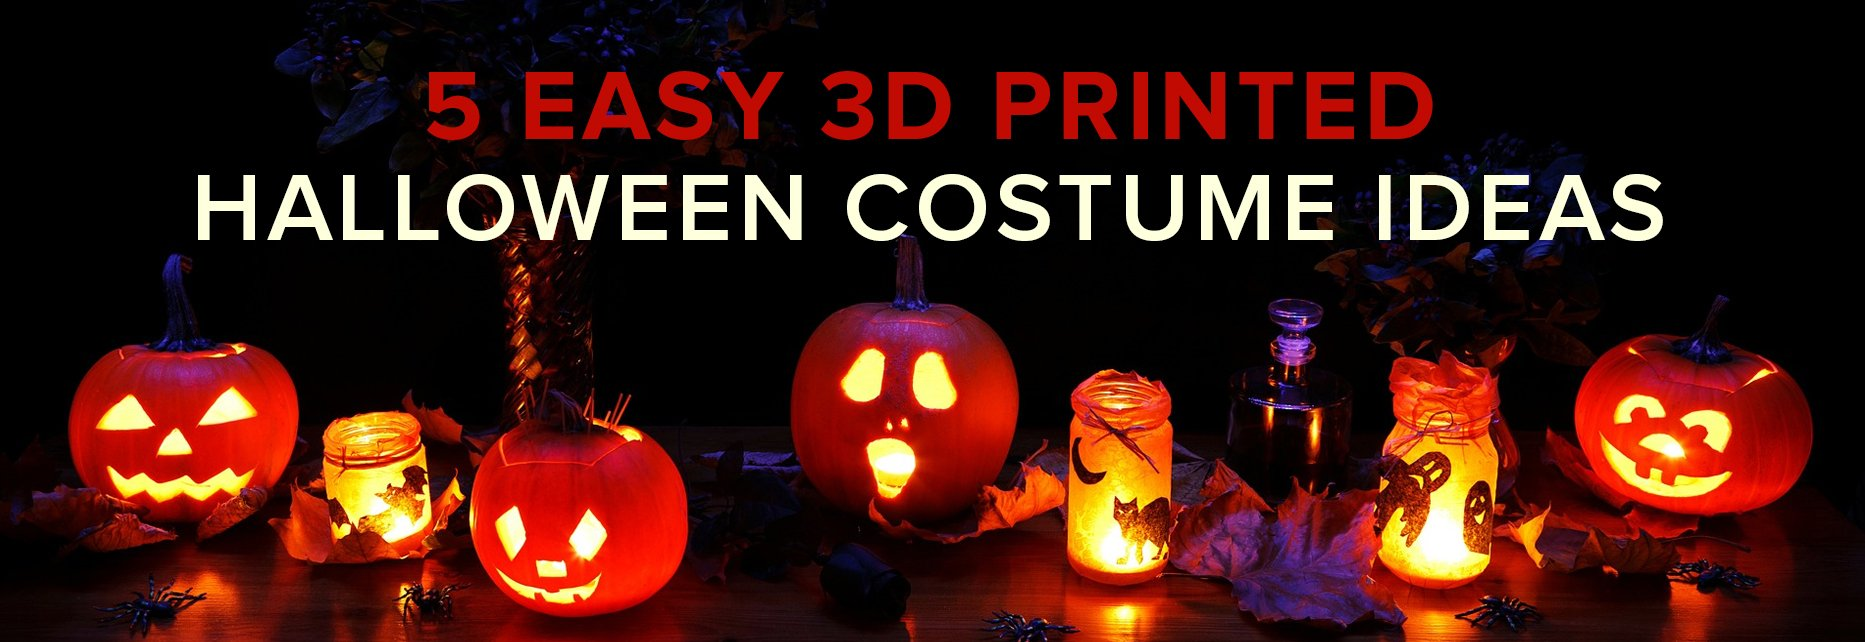 2223 Easy 223D Printed Halloween Costume Ideas - Shop223D.ca